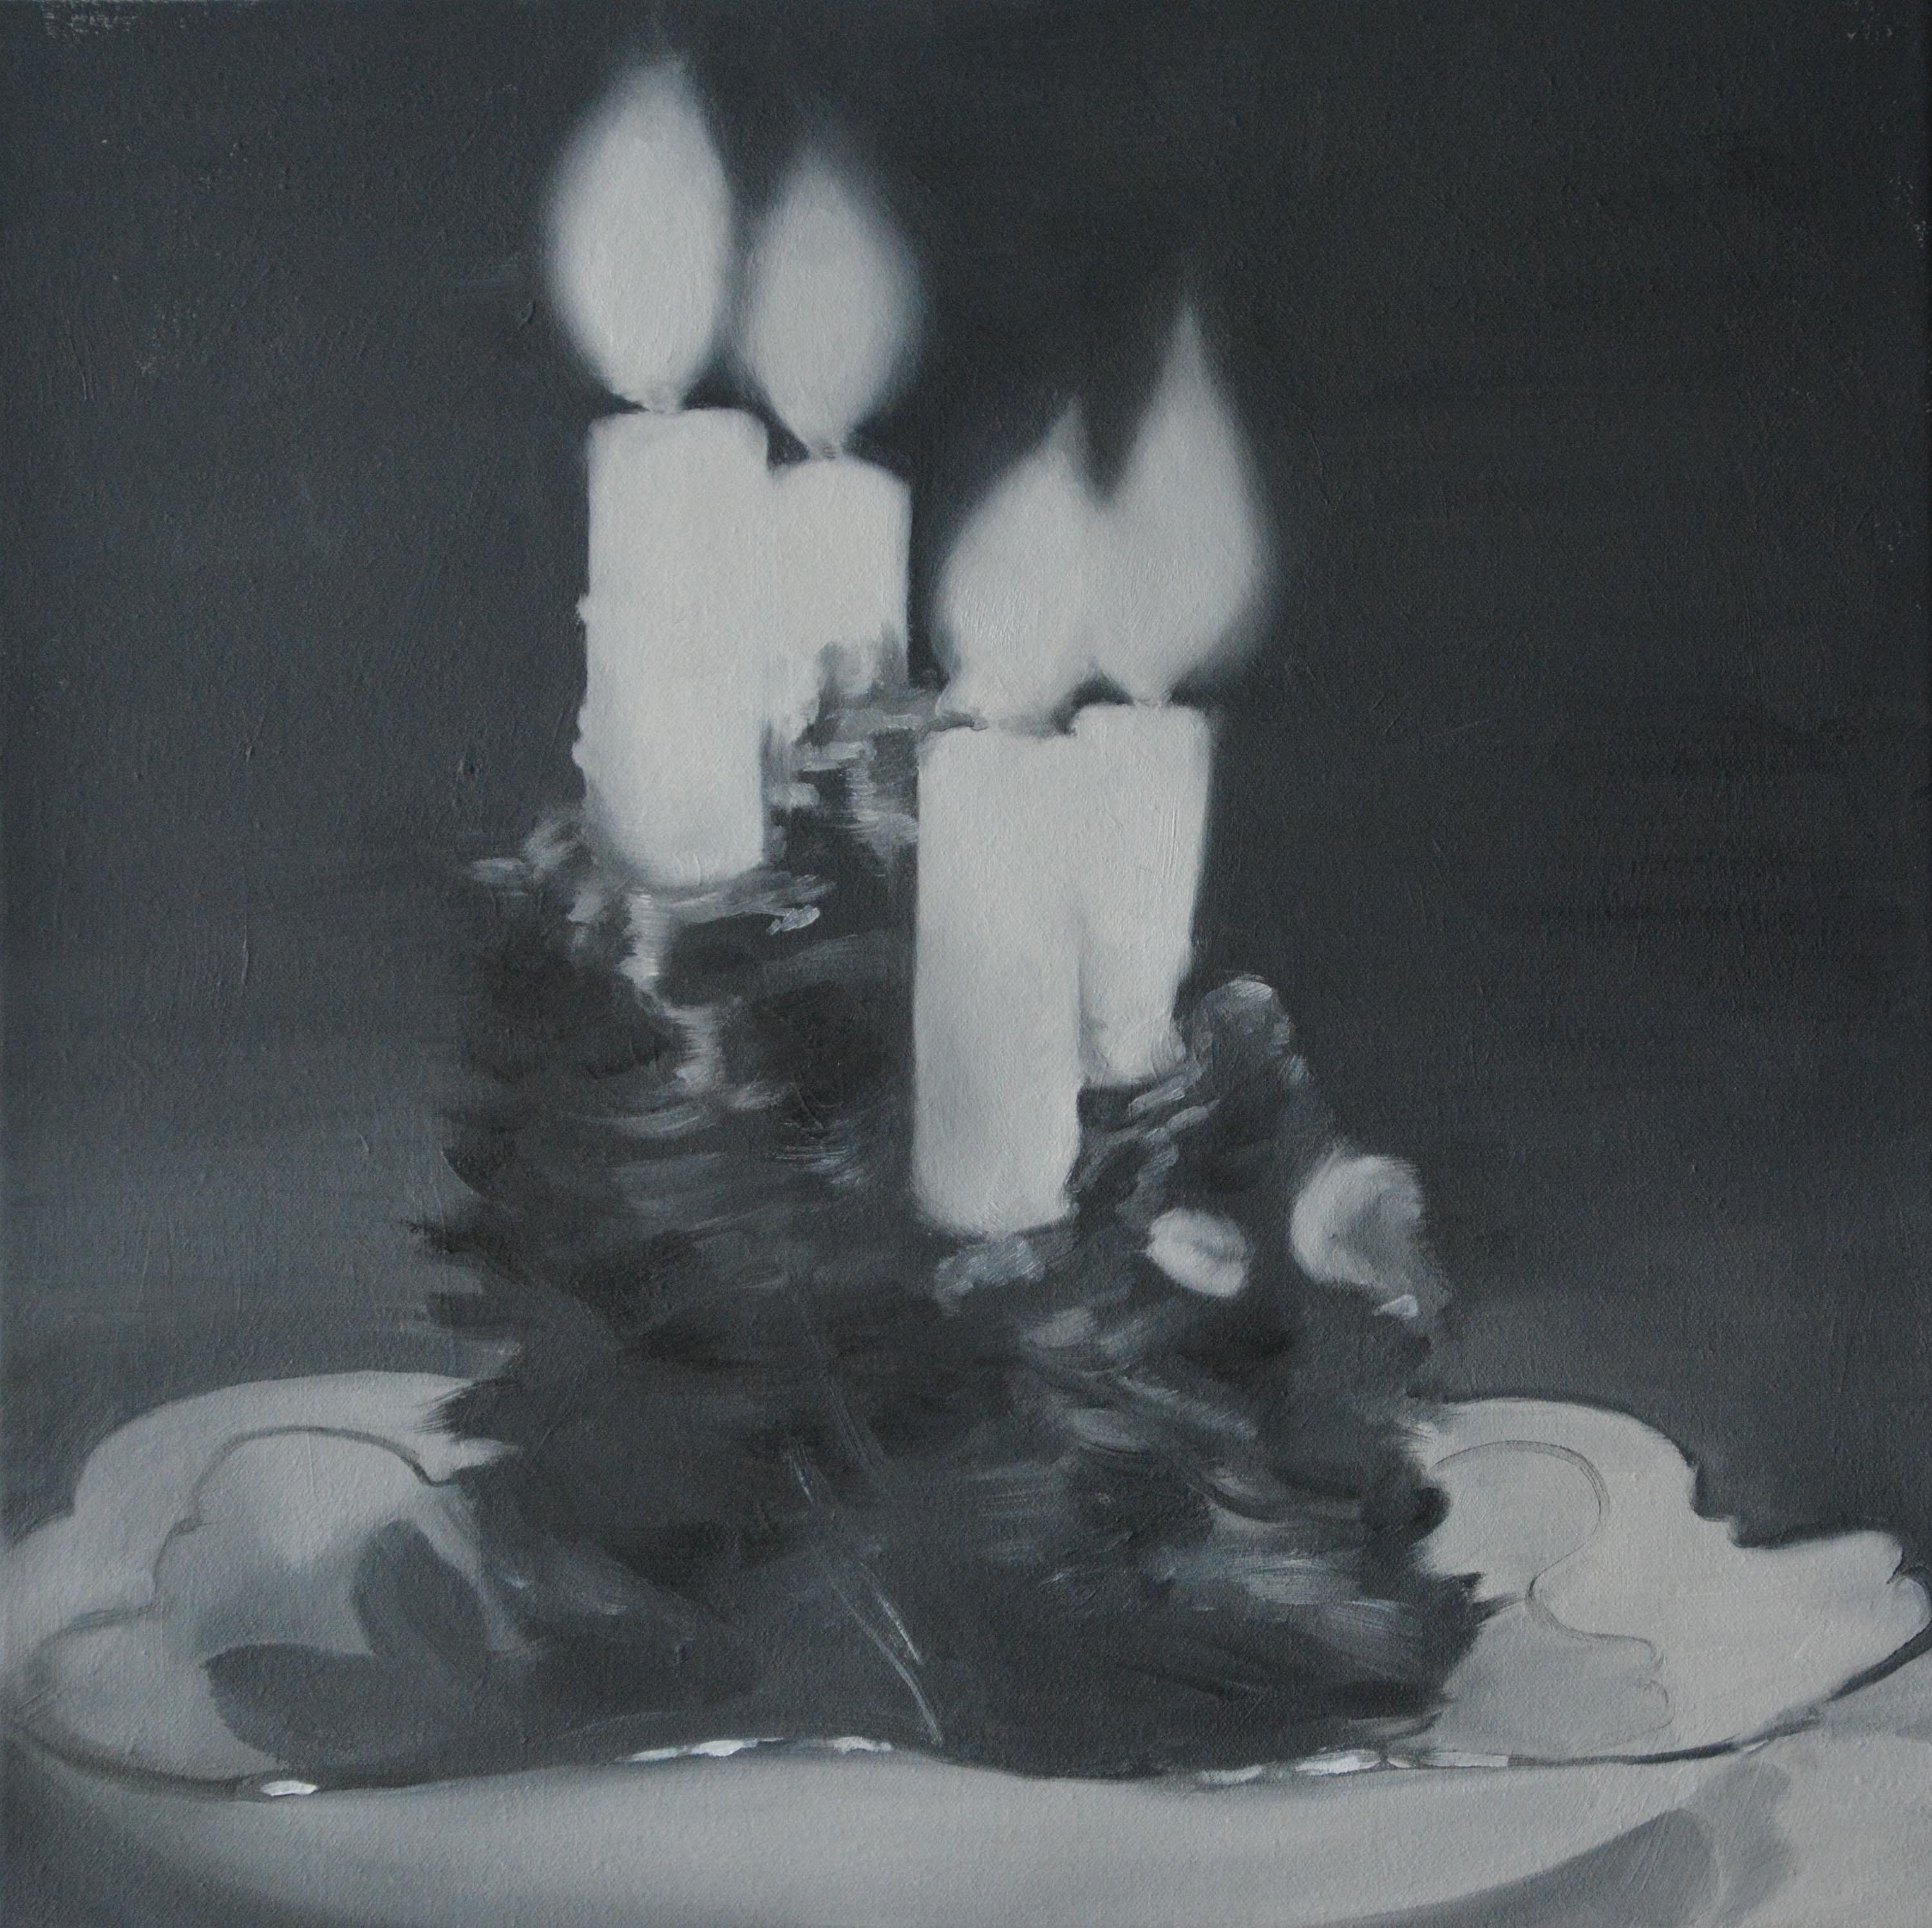 Candles in Dish, 2018, oil on canvas, 18 x 18 inches